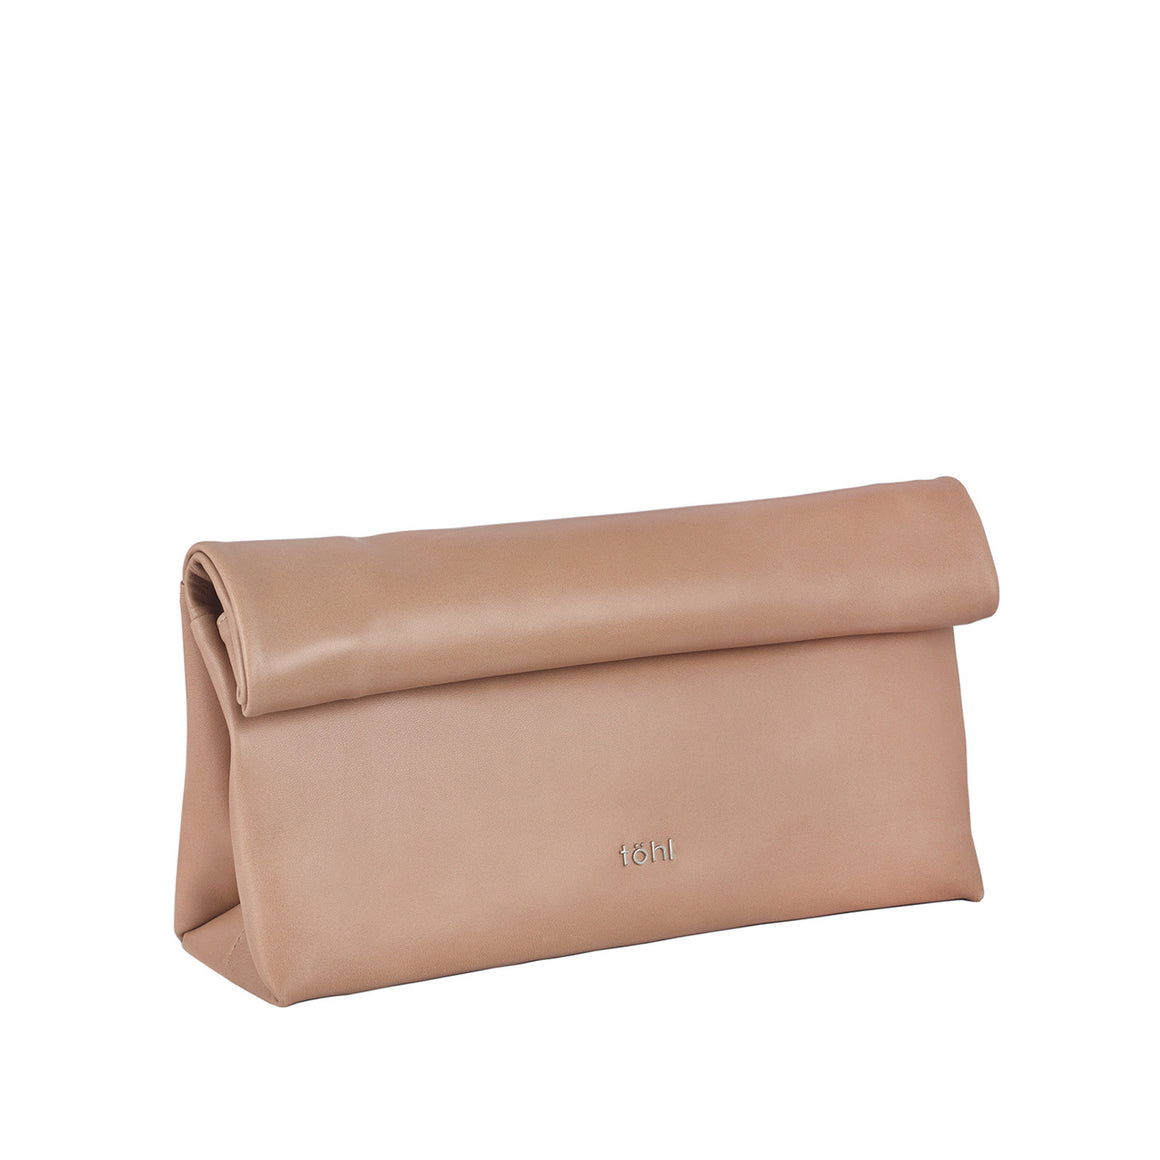 CH 0002 - TOHL FINI WOMEN'S GRIP CLUTCH - NUDE